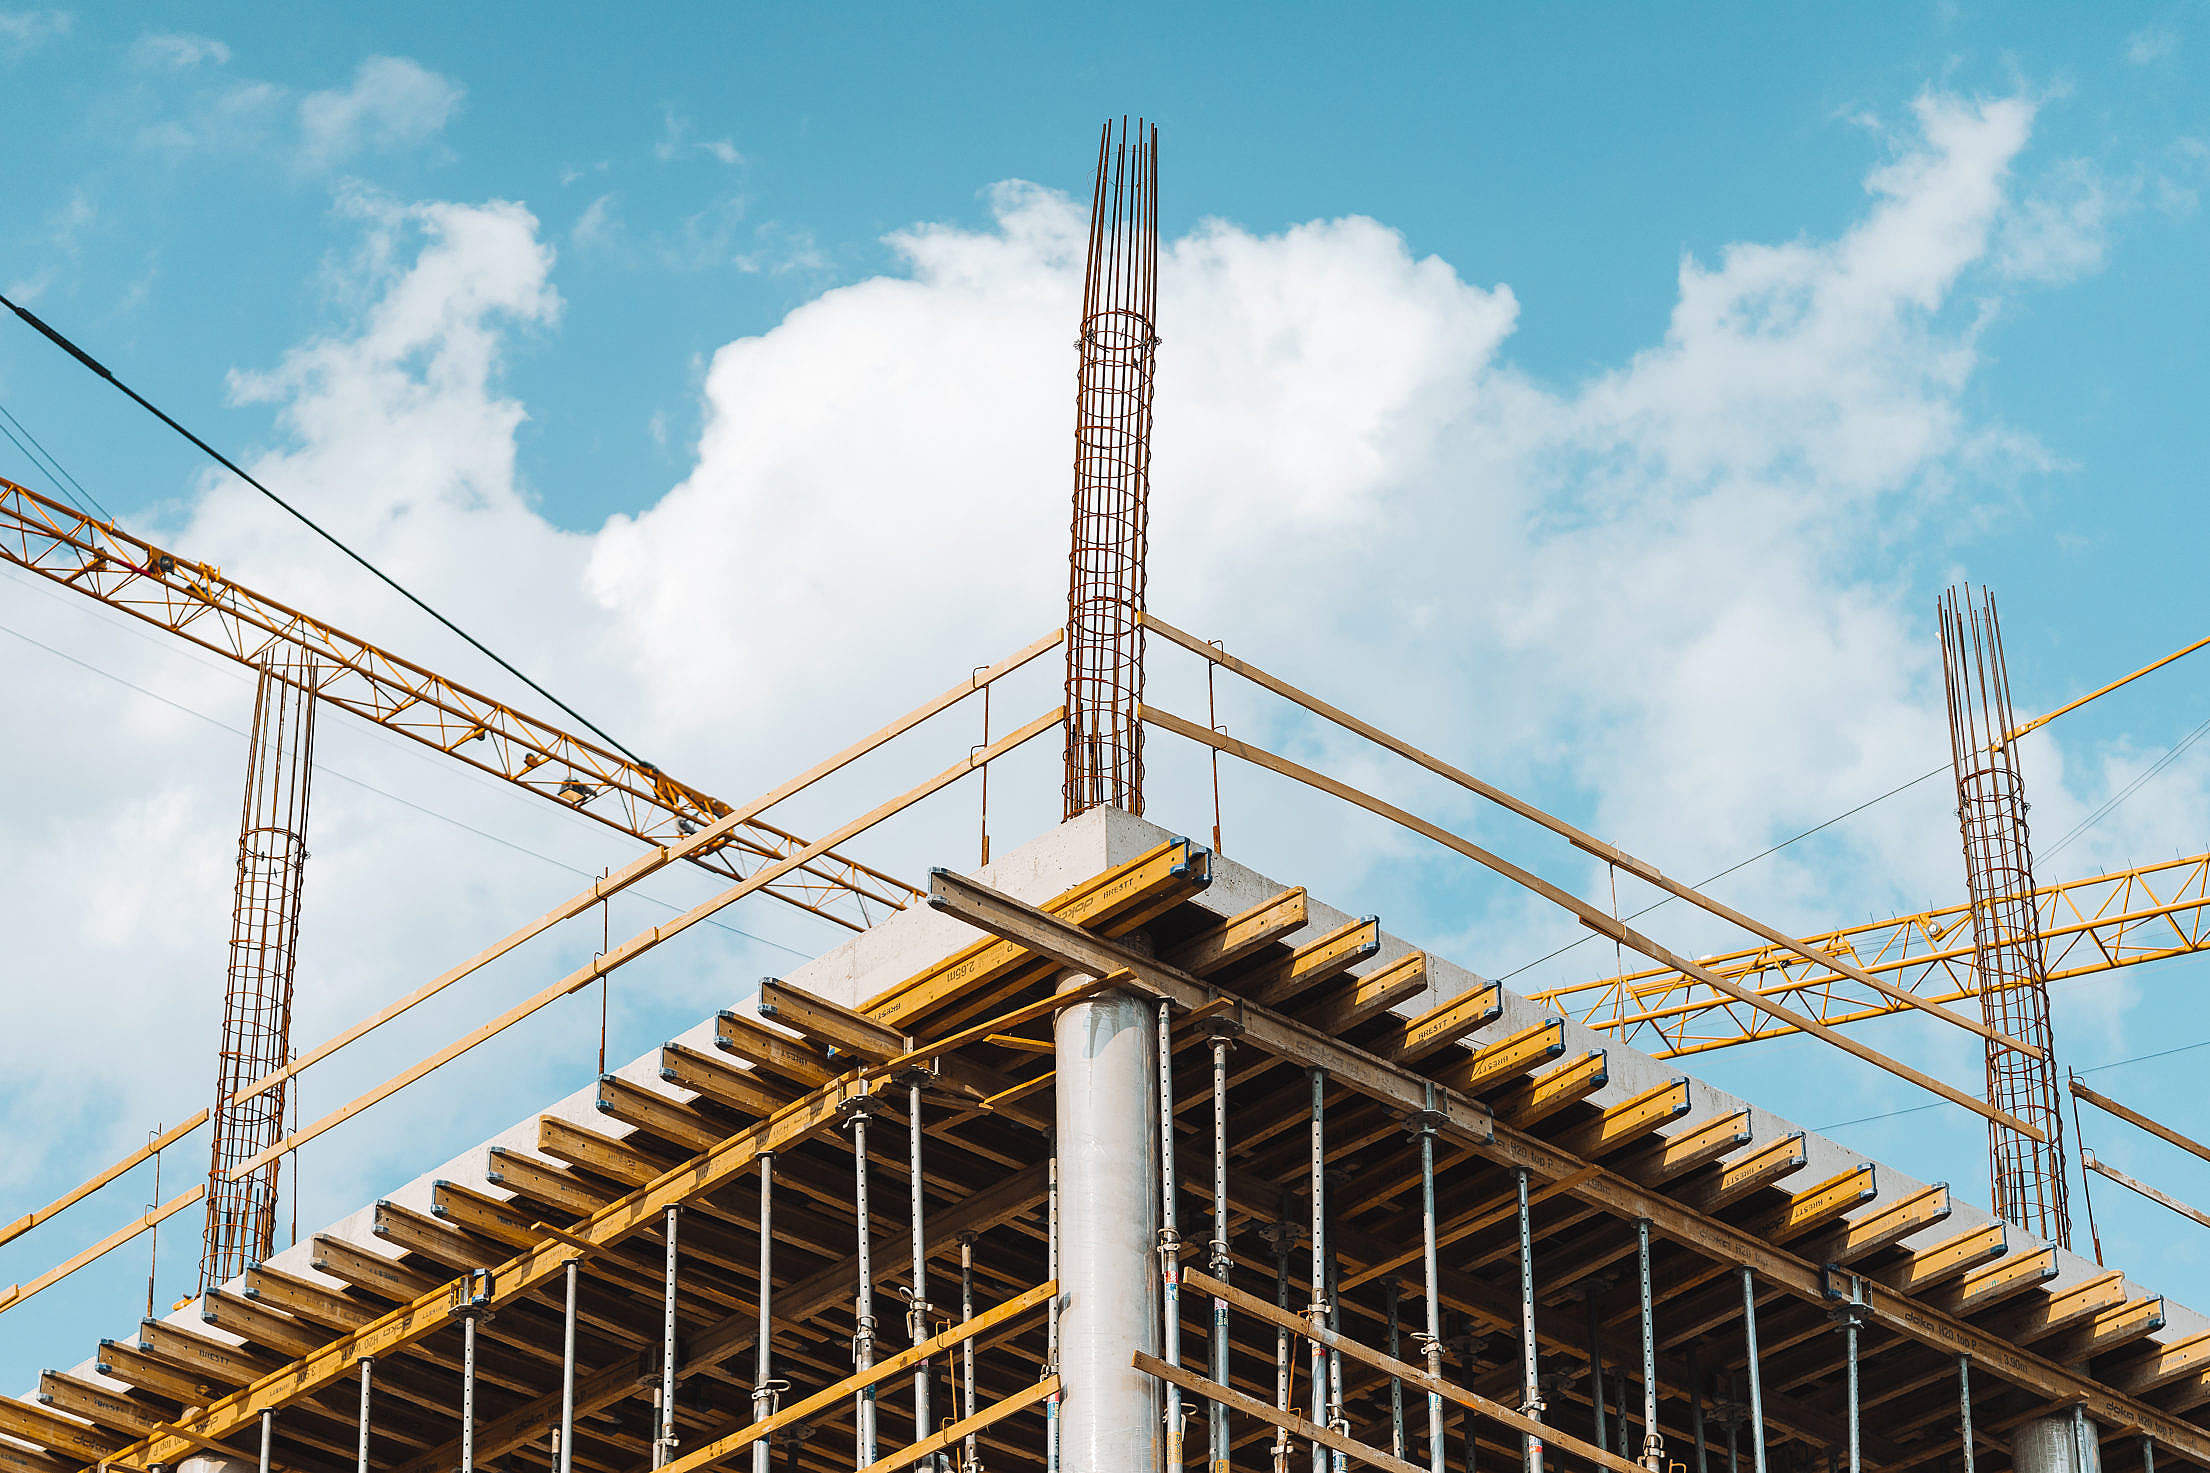 Building Construction Free Stock Photo